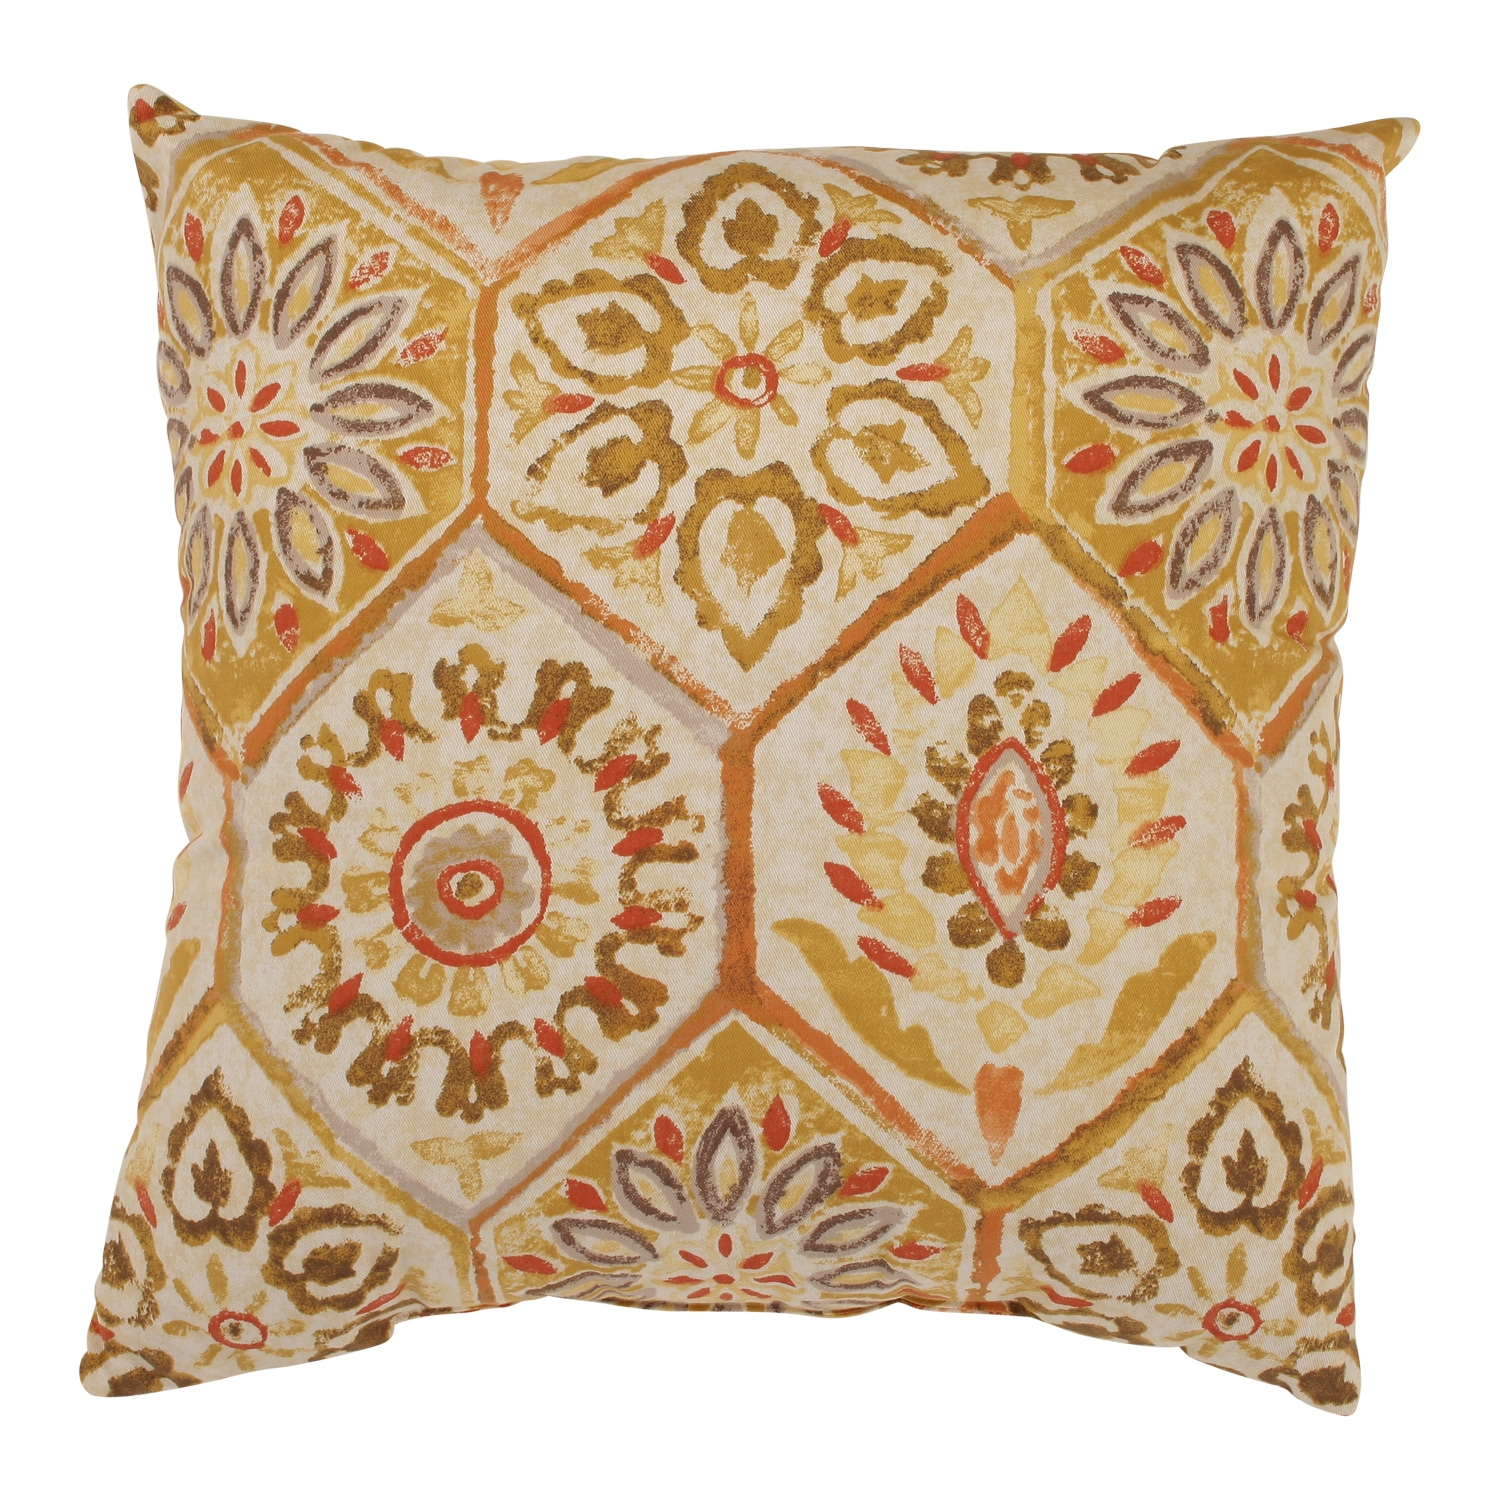 'Summer Breeze' Gold Square Throw Pillow